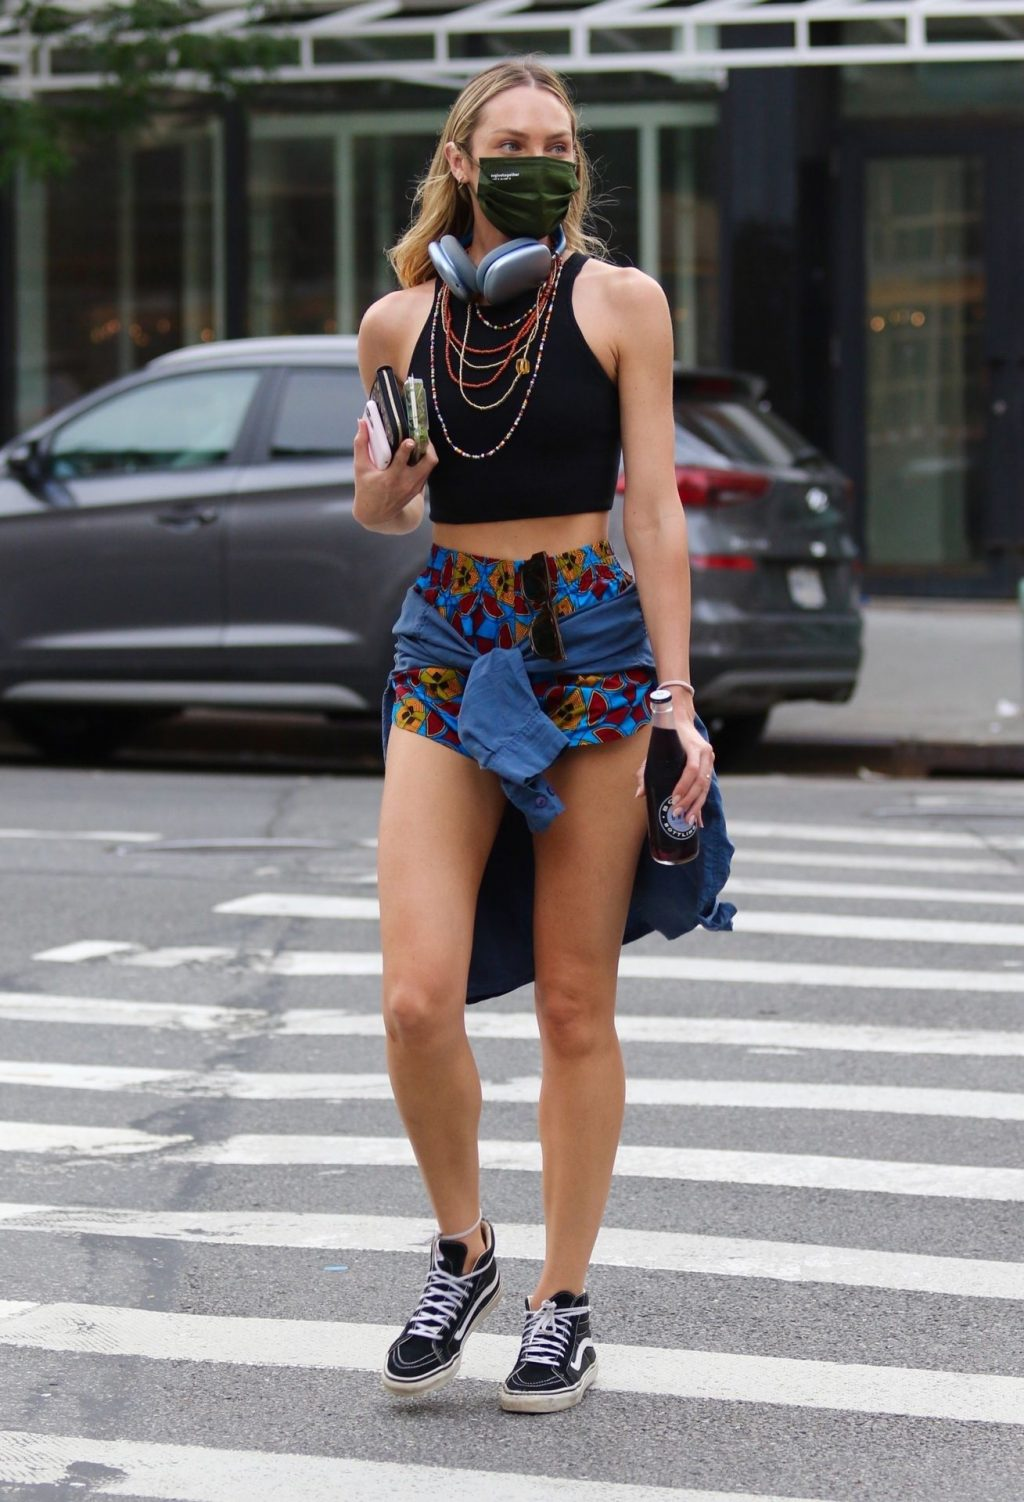 Candice Swanepoel Braves the Heatwave in Short Shorts While Giving Us a Peek at Her Midriff (19 Photos)